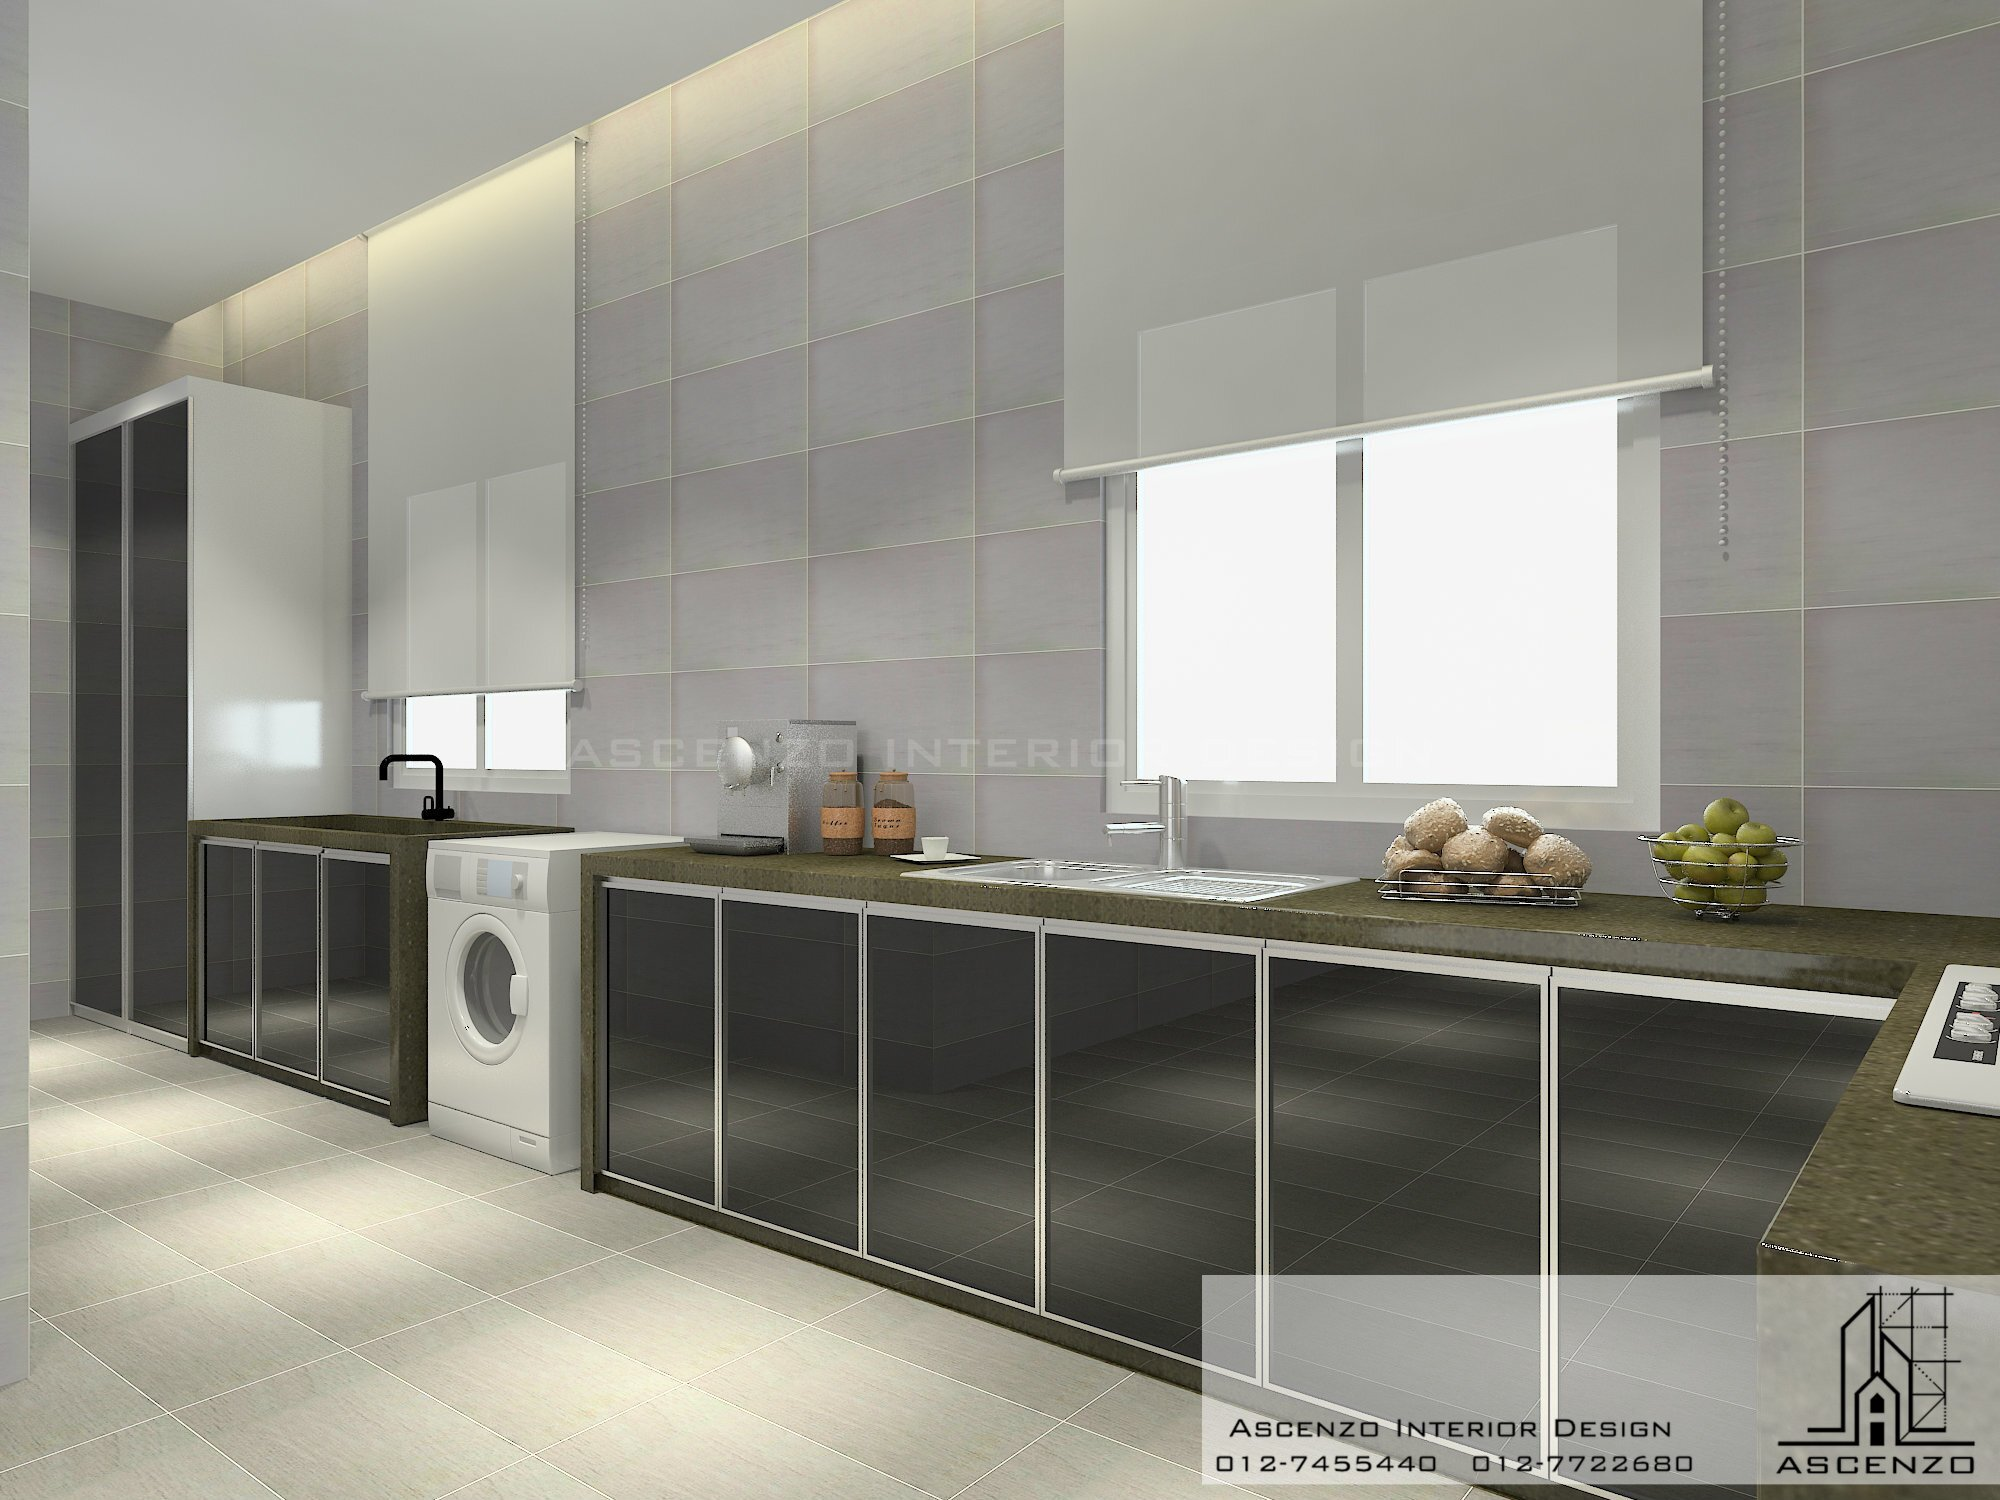 3d kitchen 23